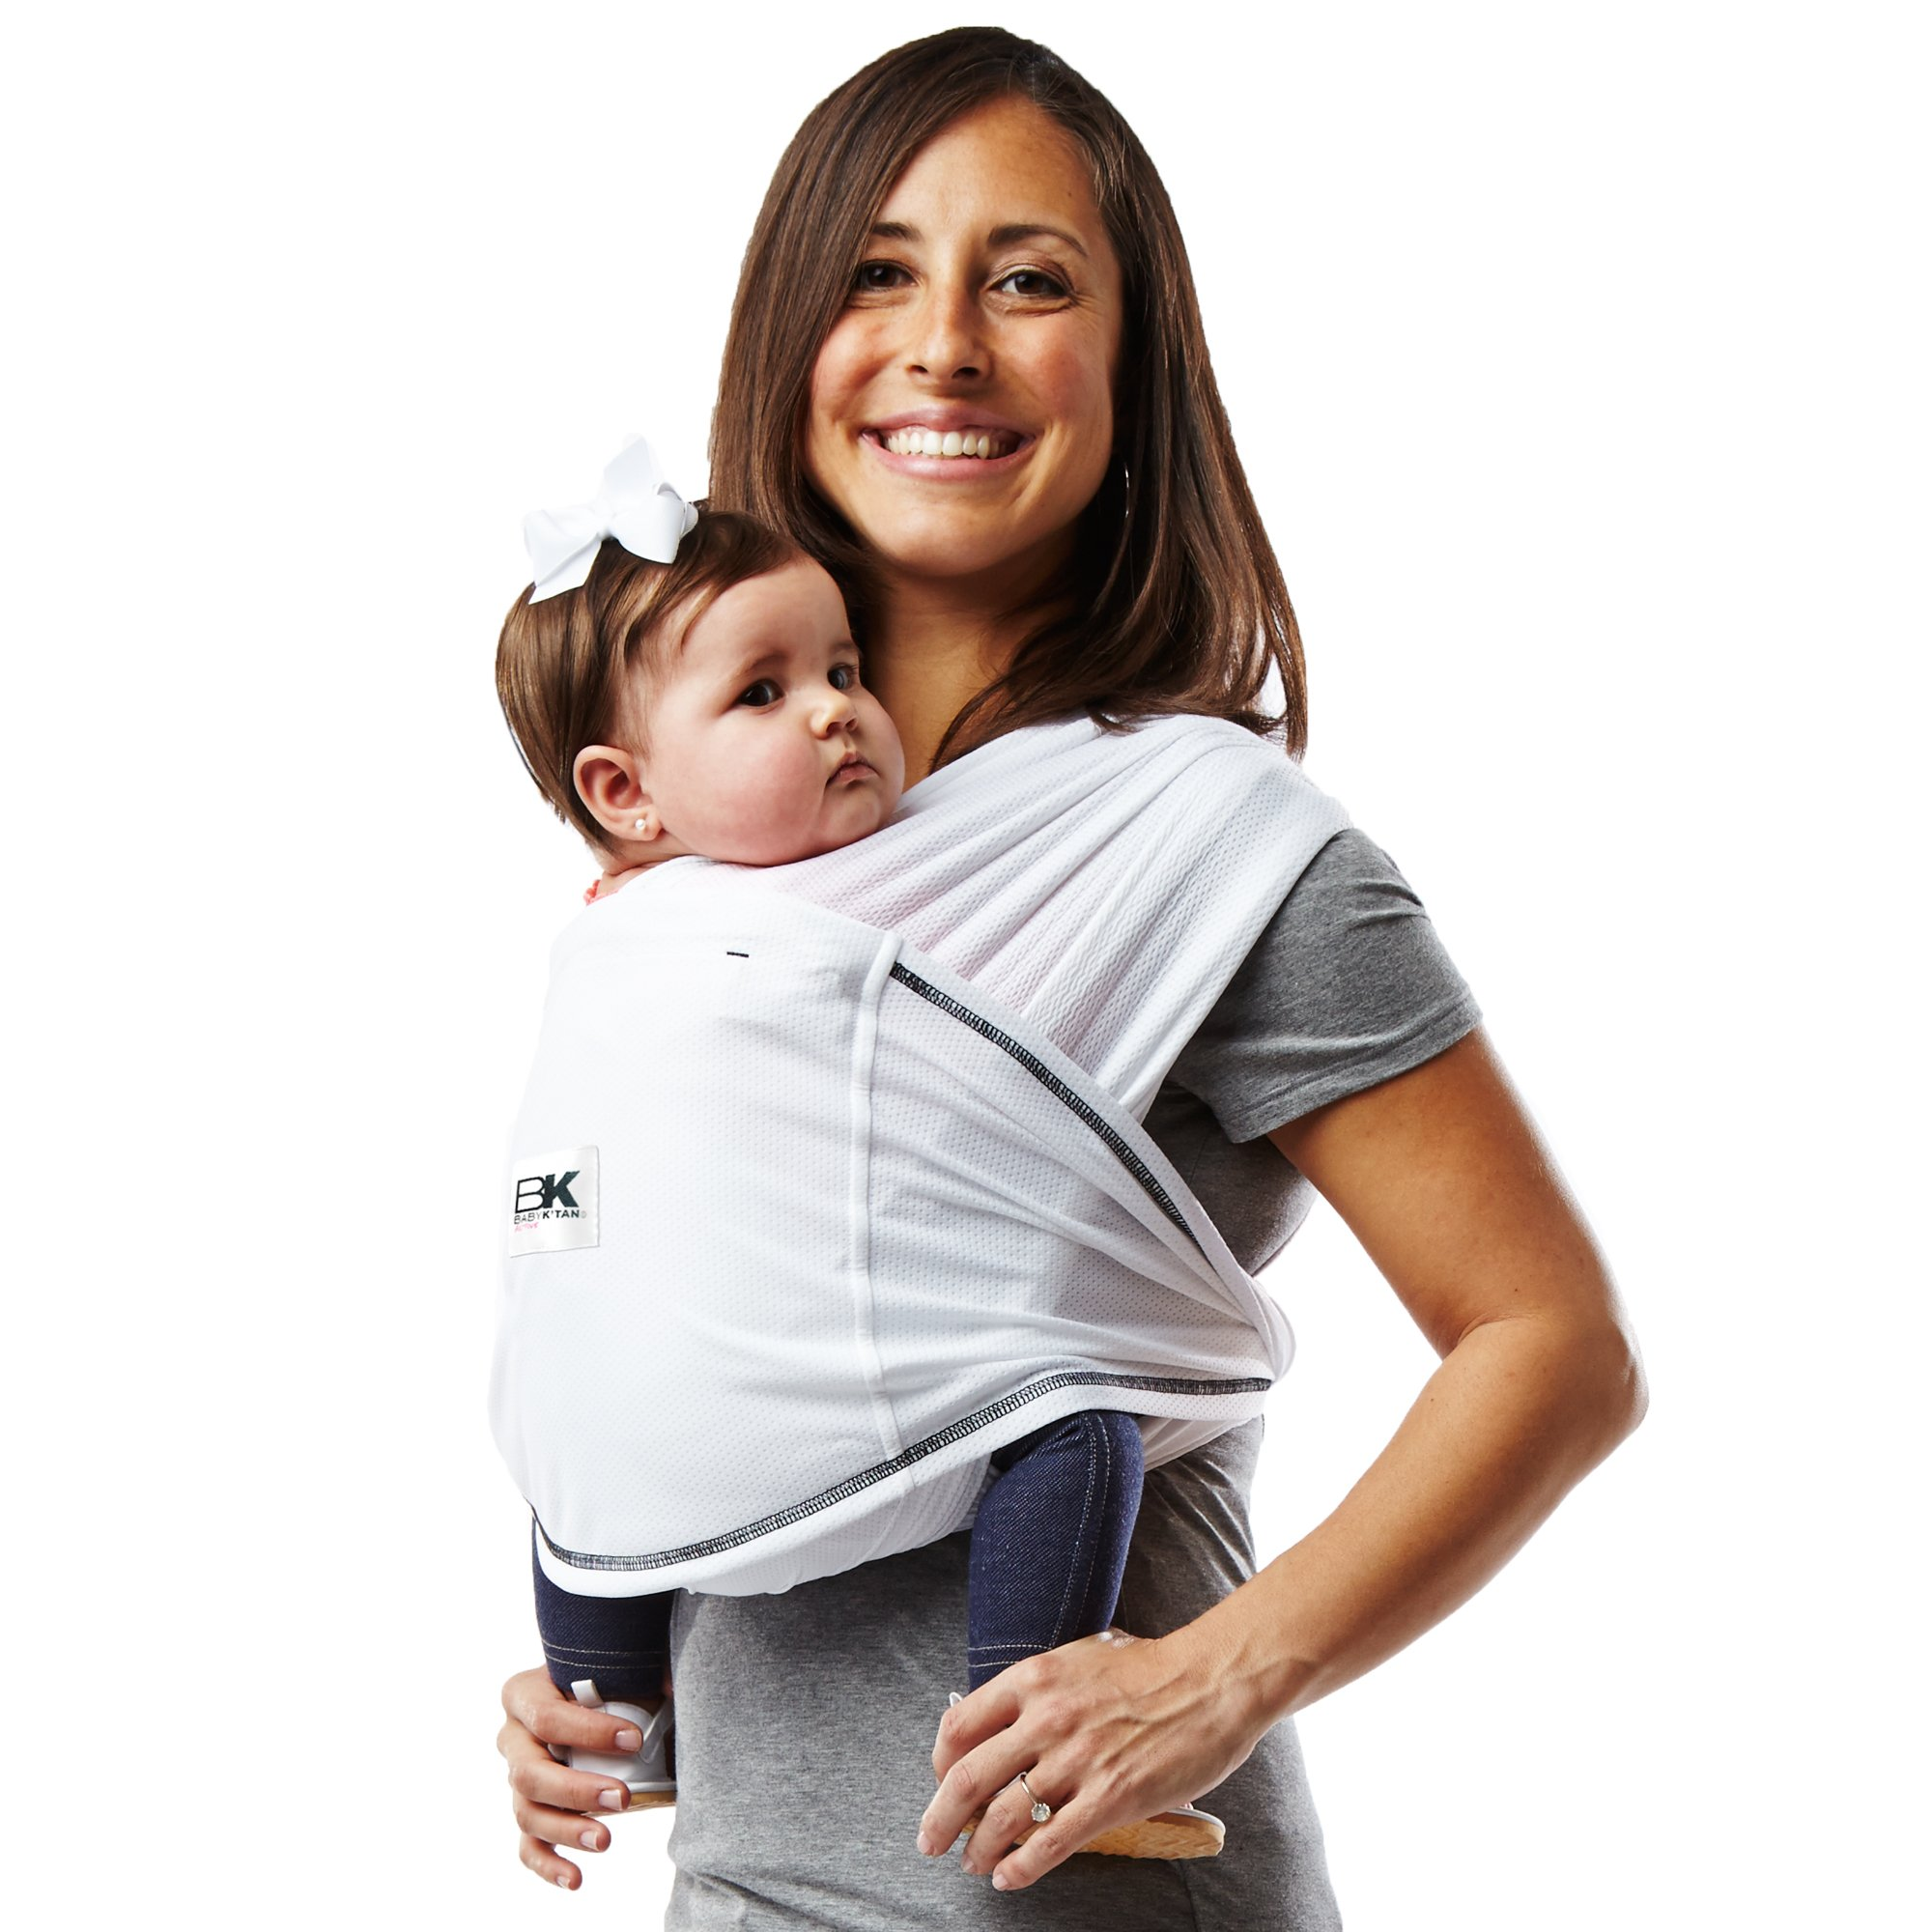 Baby Ktan ACTIVE Baby Carrier, White Sport Mesh (M) product image